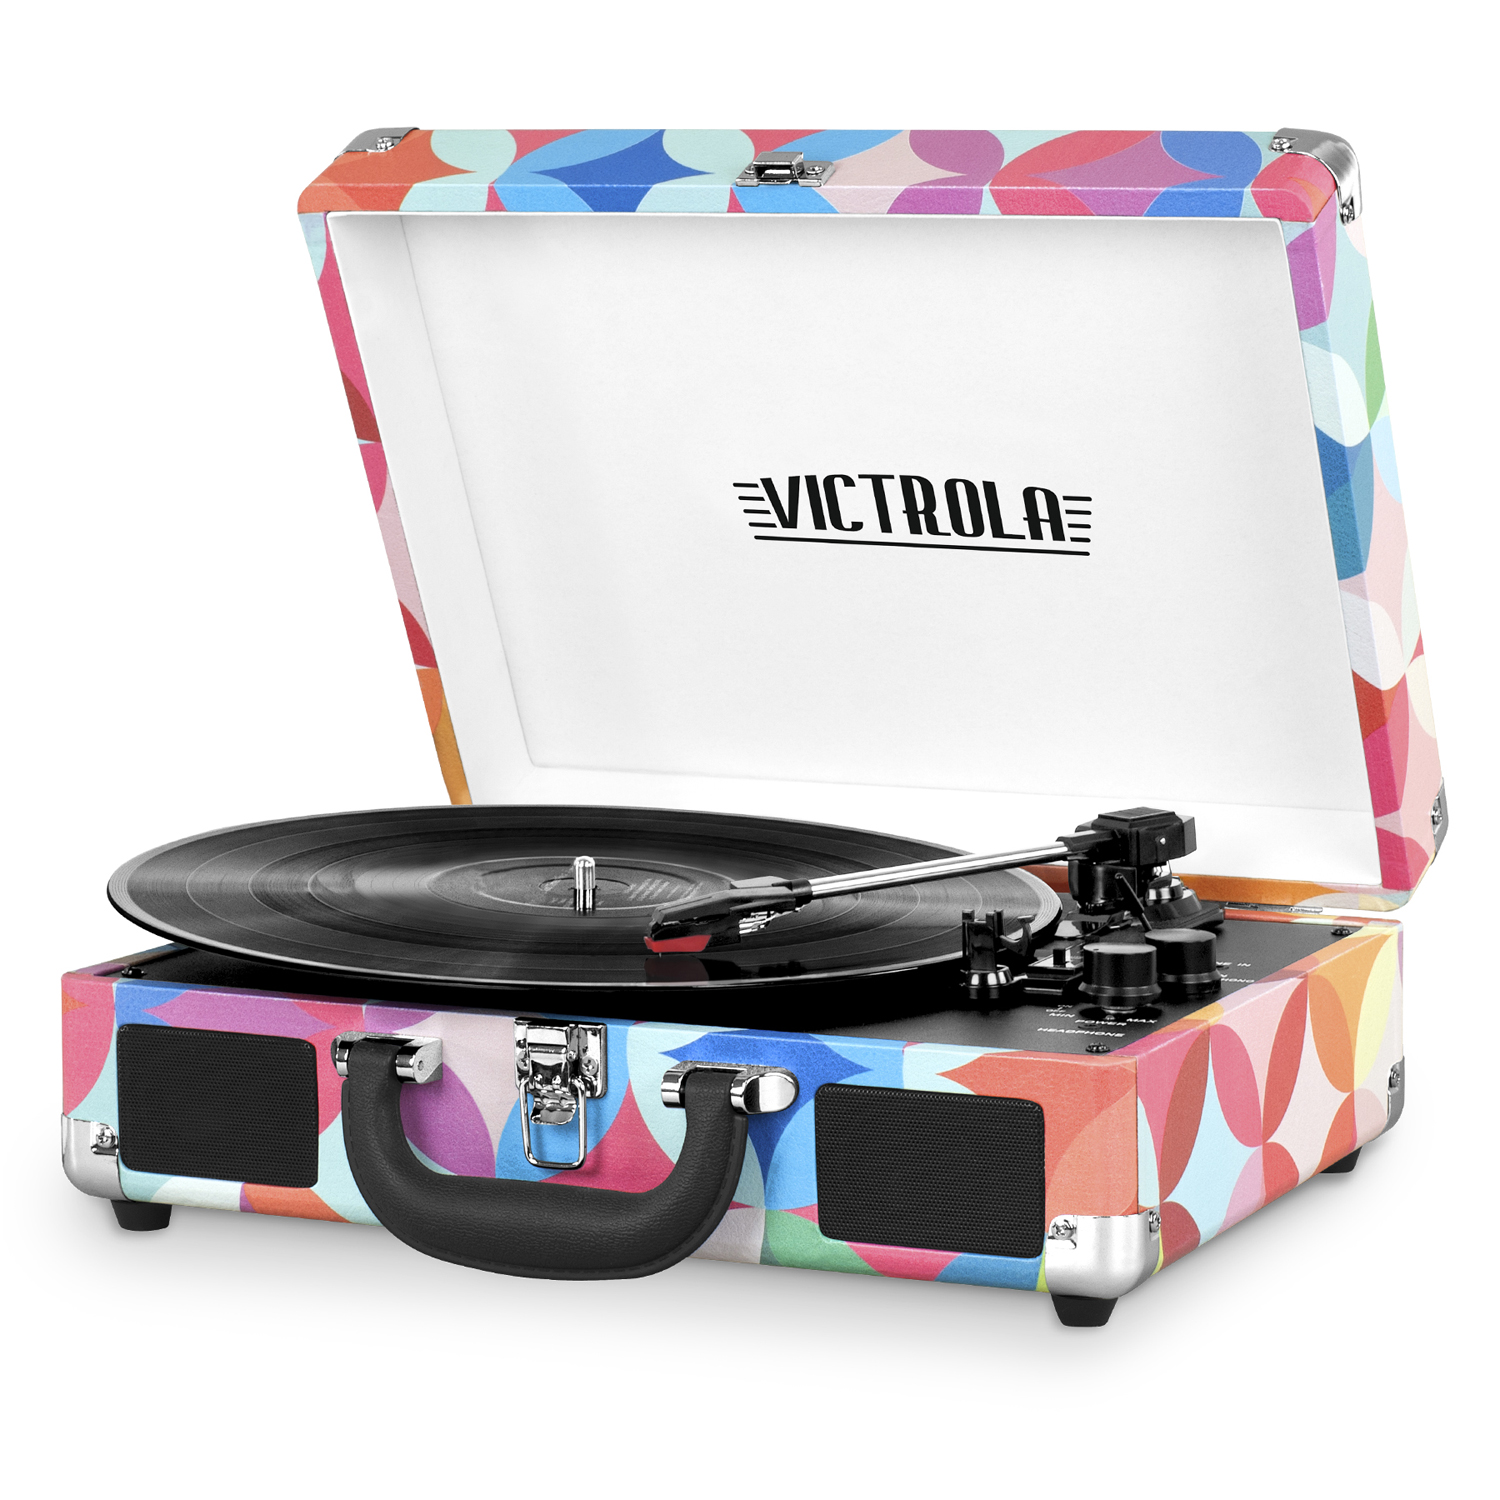 Portable Victrola Suitcase Record Player With Bluetooth And 3 Speed  Turntable, Geometric Print